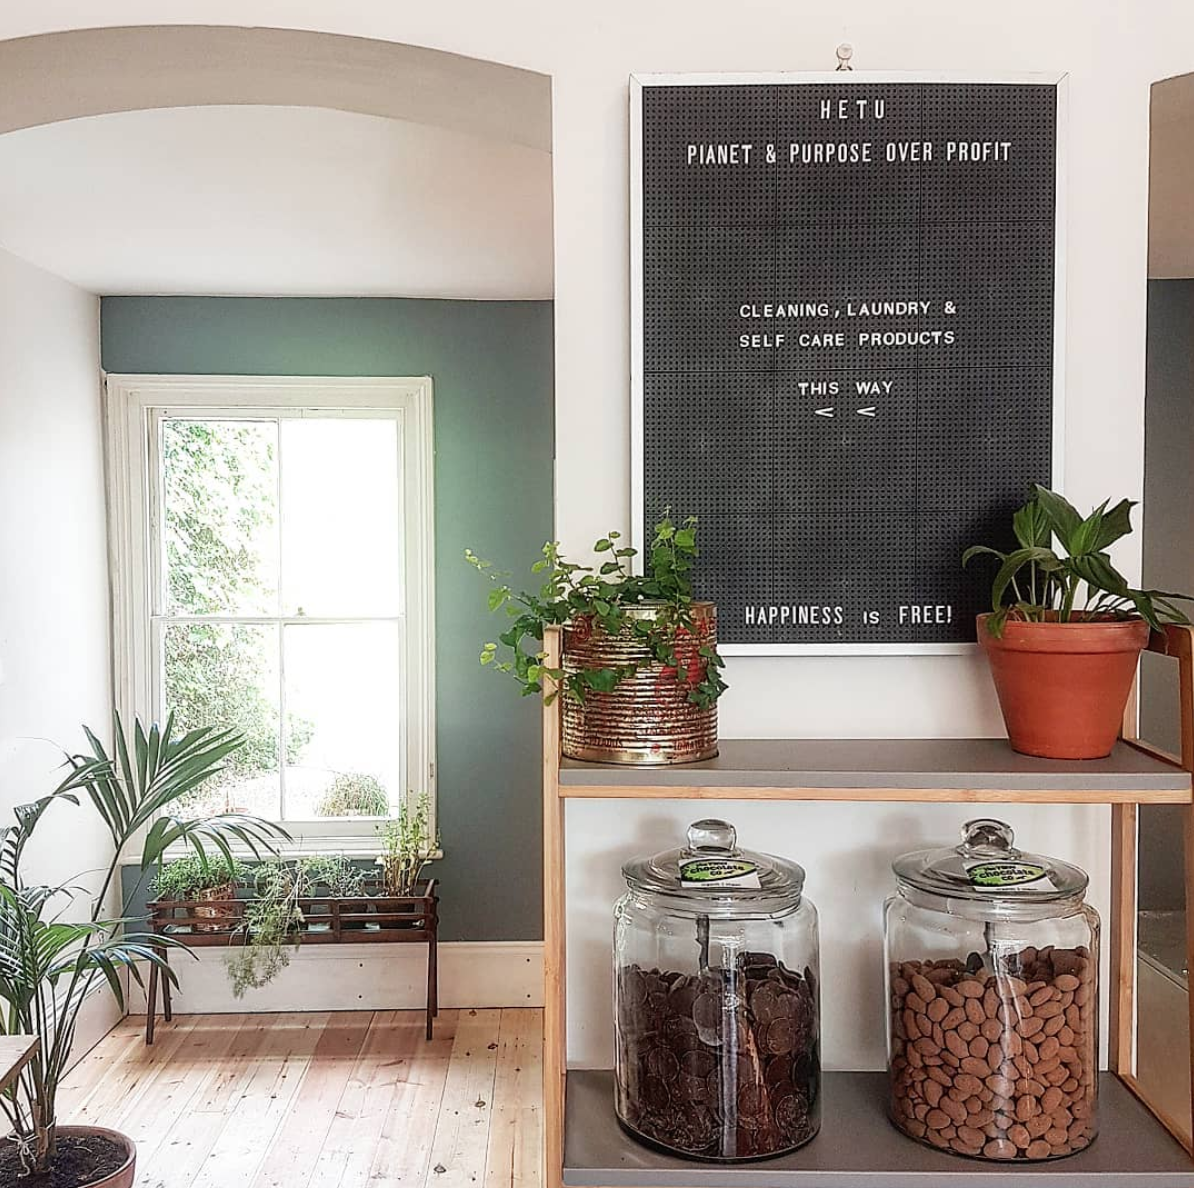 Hetu, zero waste food store, London